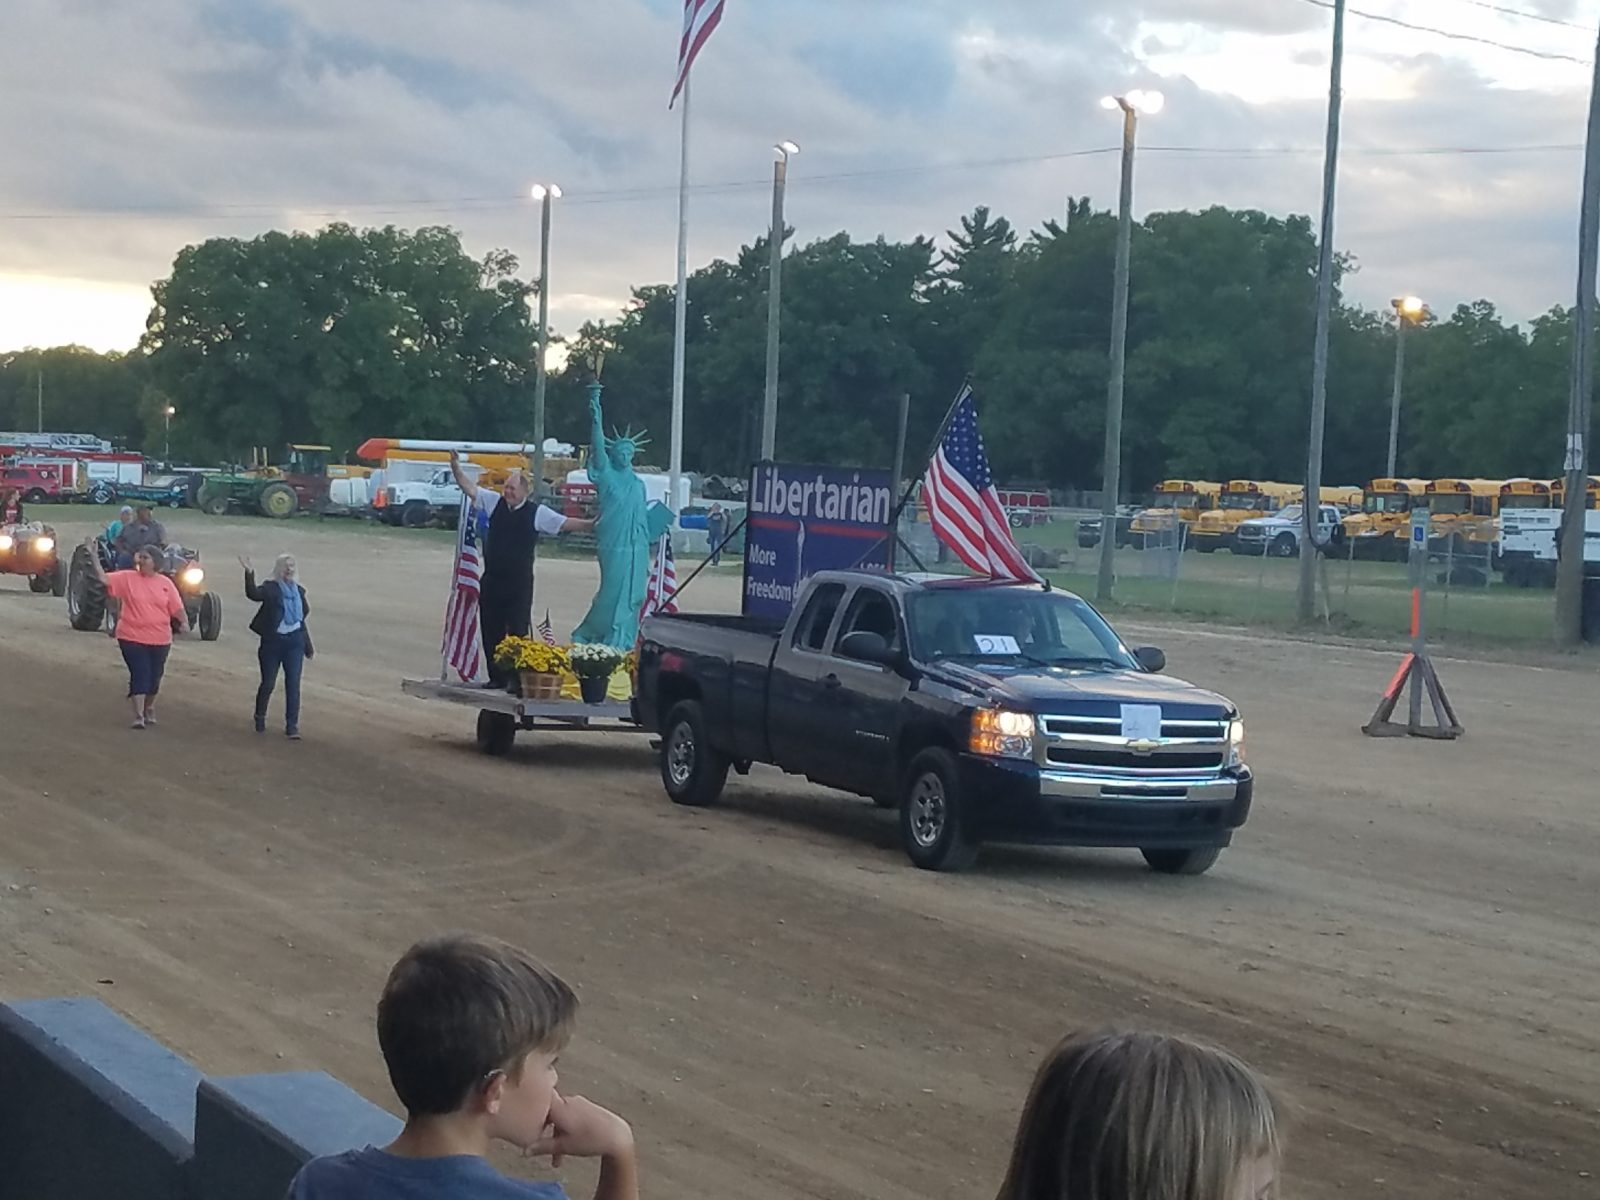 Bill Gelineau rode the LPWM float around at the Allegan Fair with Mary Buzuma folowing on foot.  Photo by Arnis Davidsons.